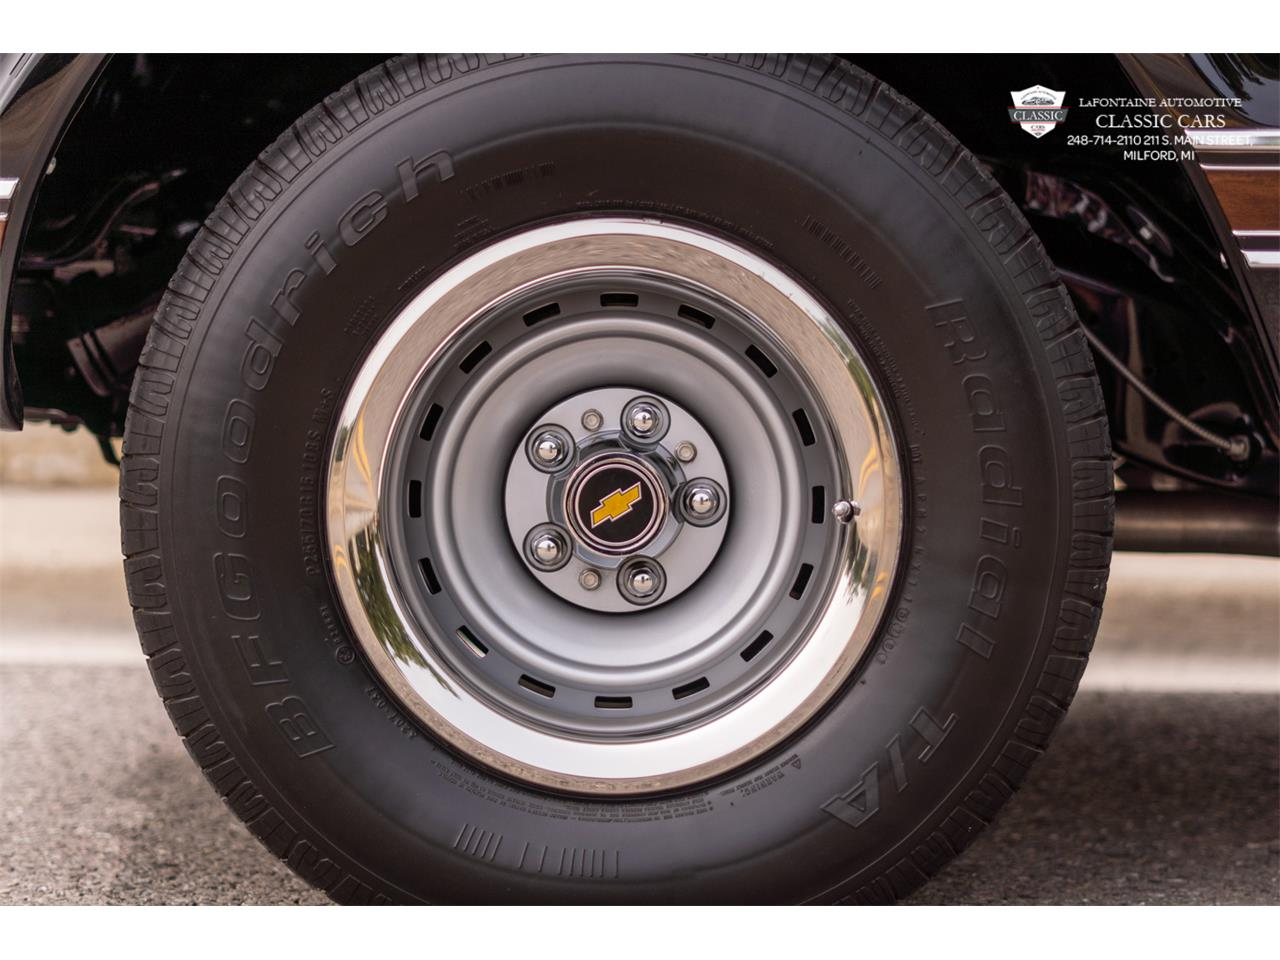 1972 Chevrolet C10 (CC-1365219) for sale in Milford, Michigan